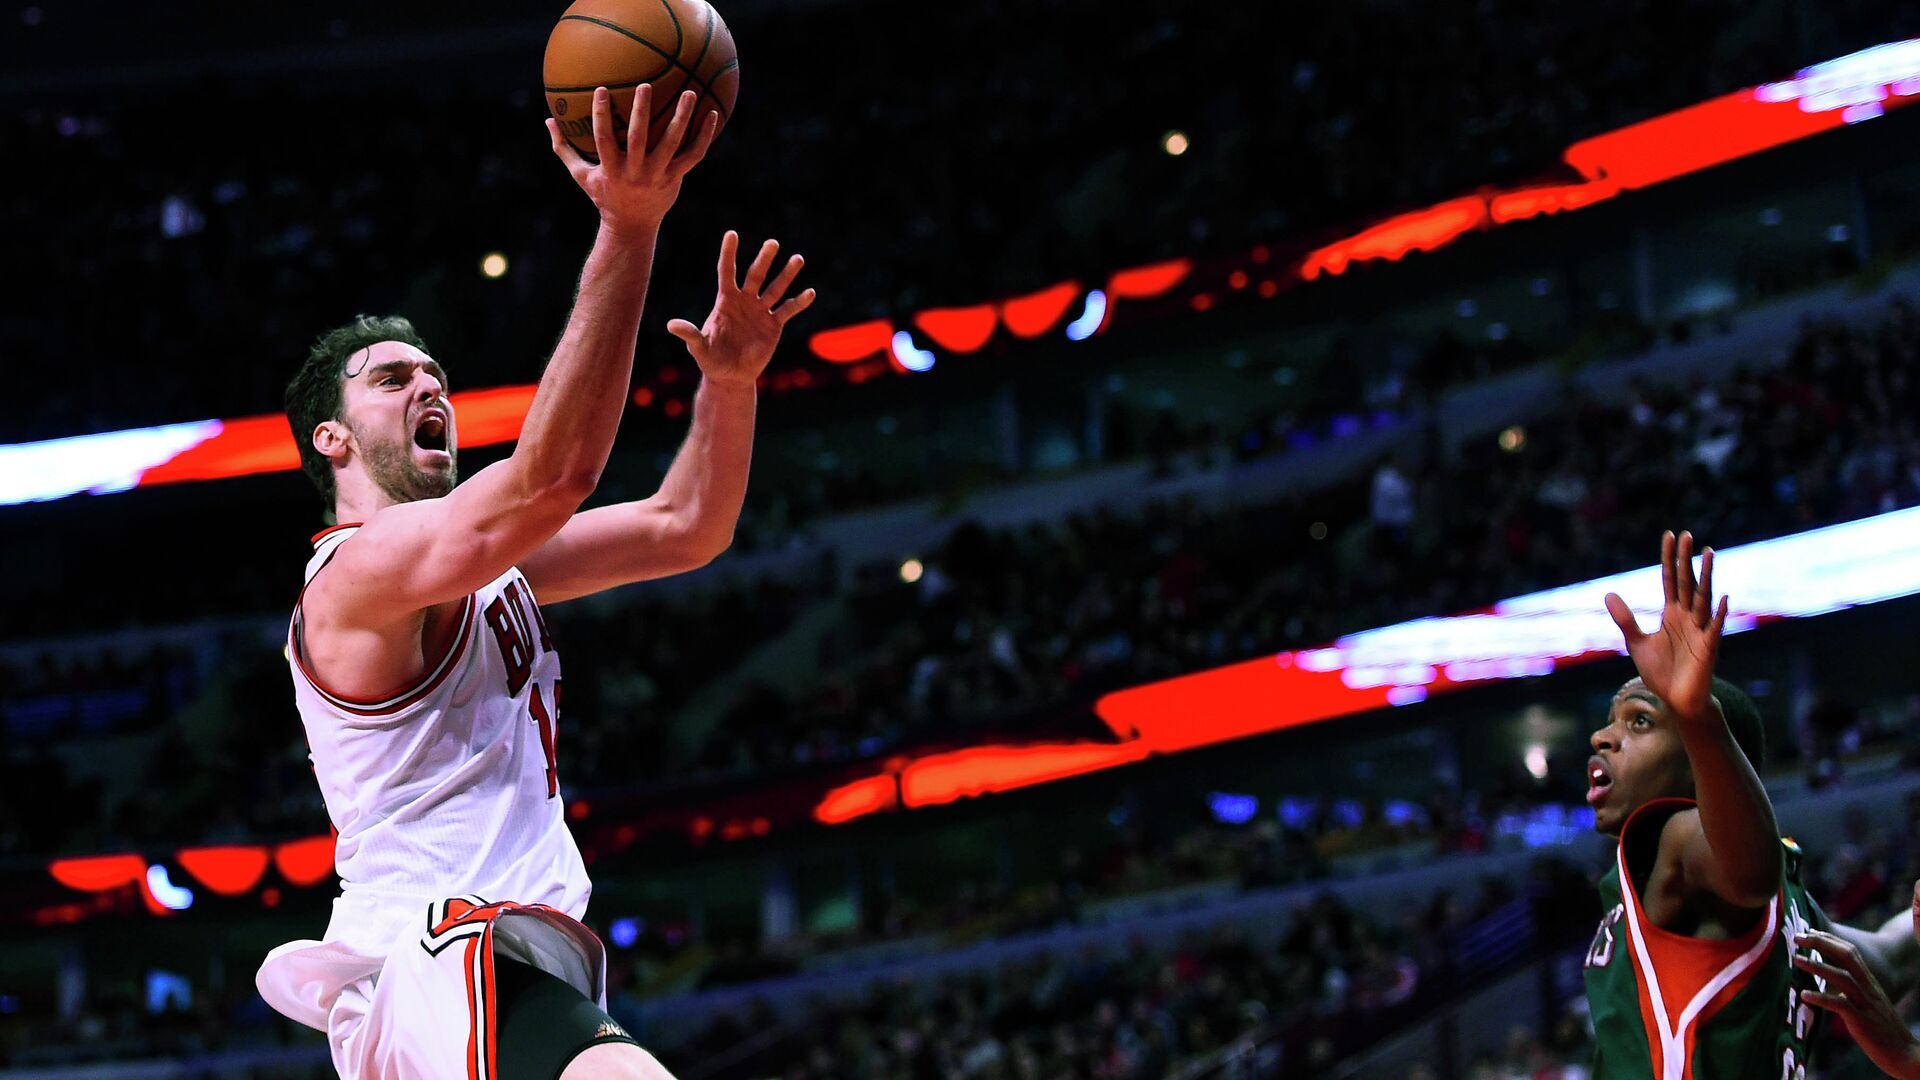 Jan 10, 2015; Chicago, IL, USA; Chicago Bulls forward Pau Gasol (16) shoots the ball against the Milwaukee Bucks during the second half at the United Center. The Chicago Bulls defeat the Milwaukee Bucks 95-87. - Sputnik Mundo, 1920, 05.10.2021